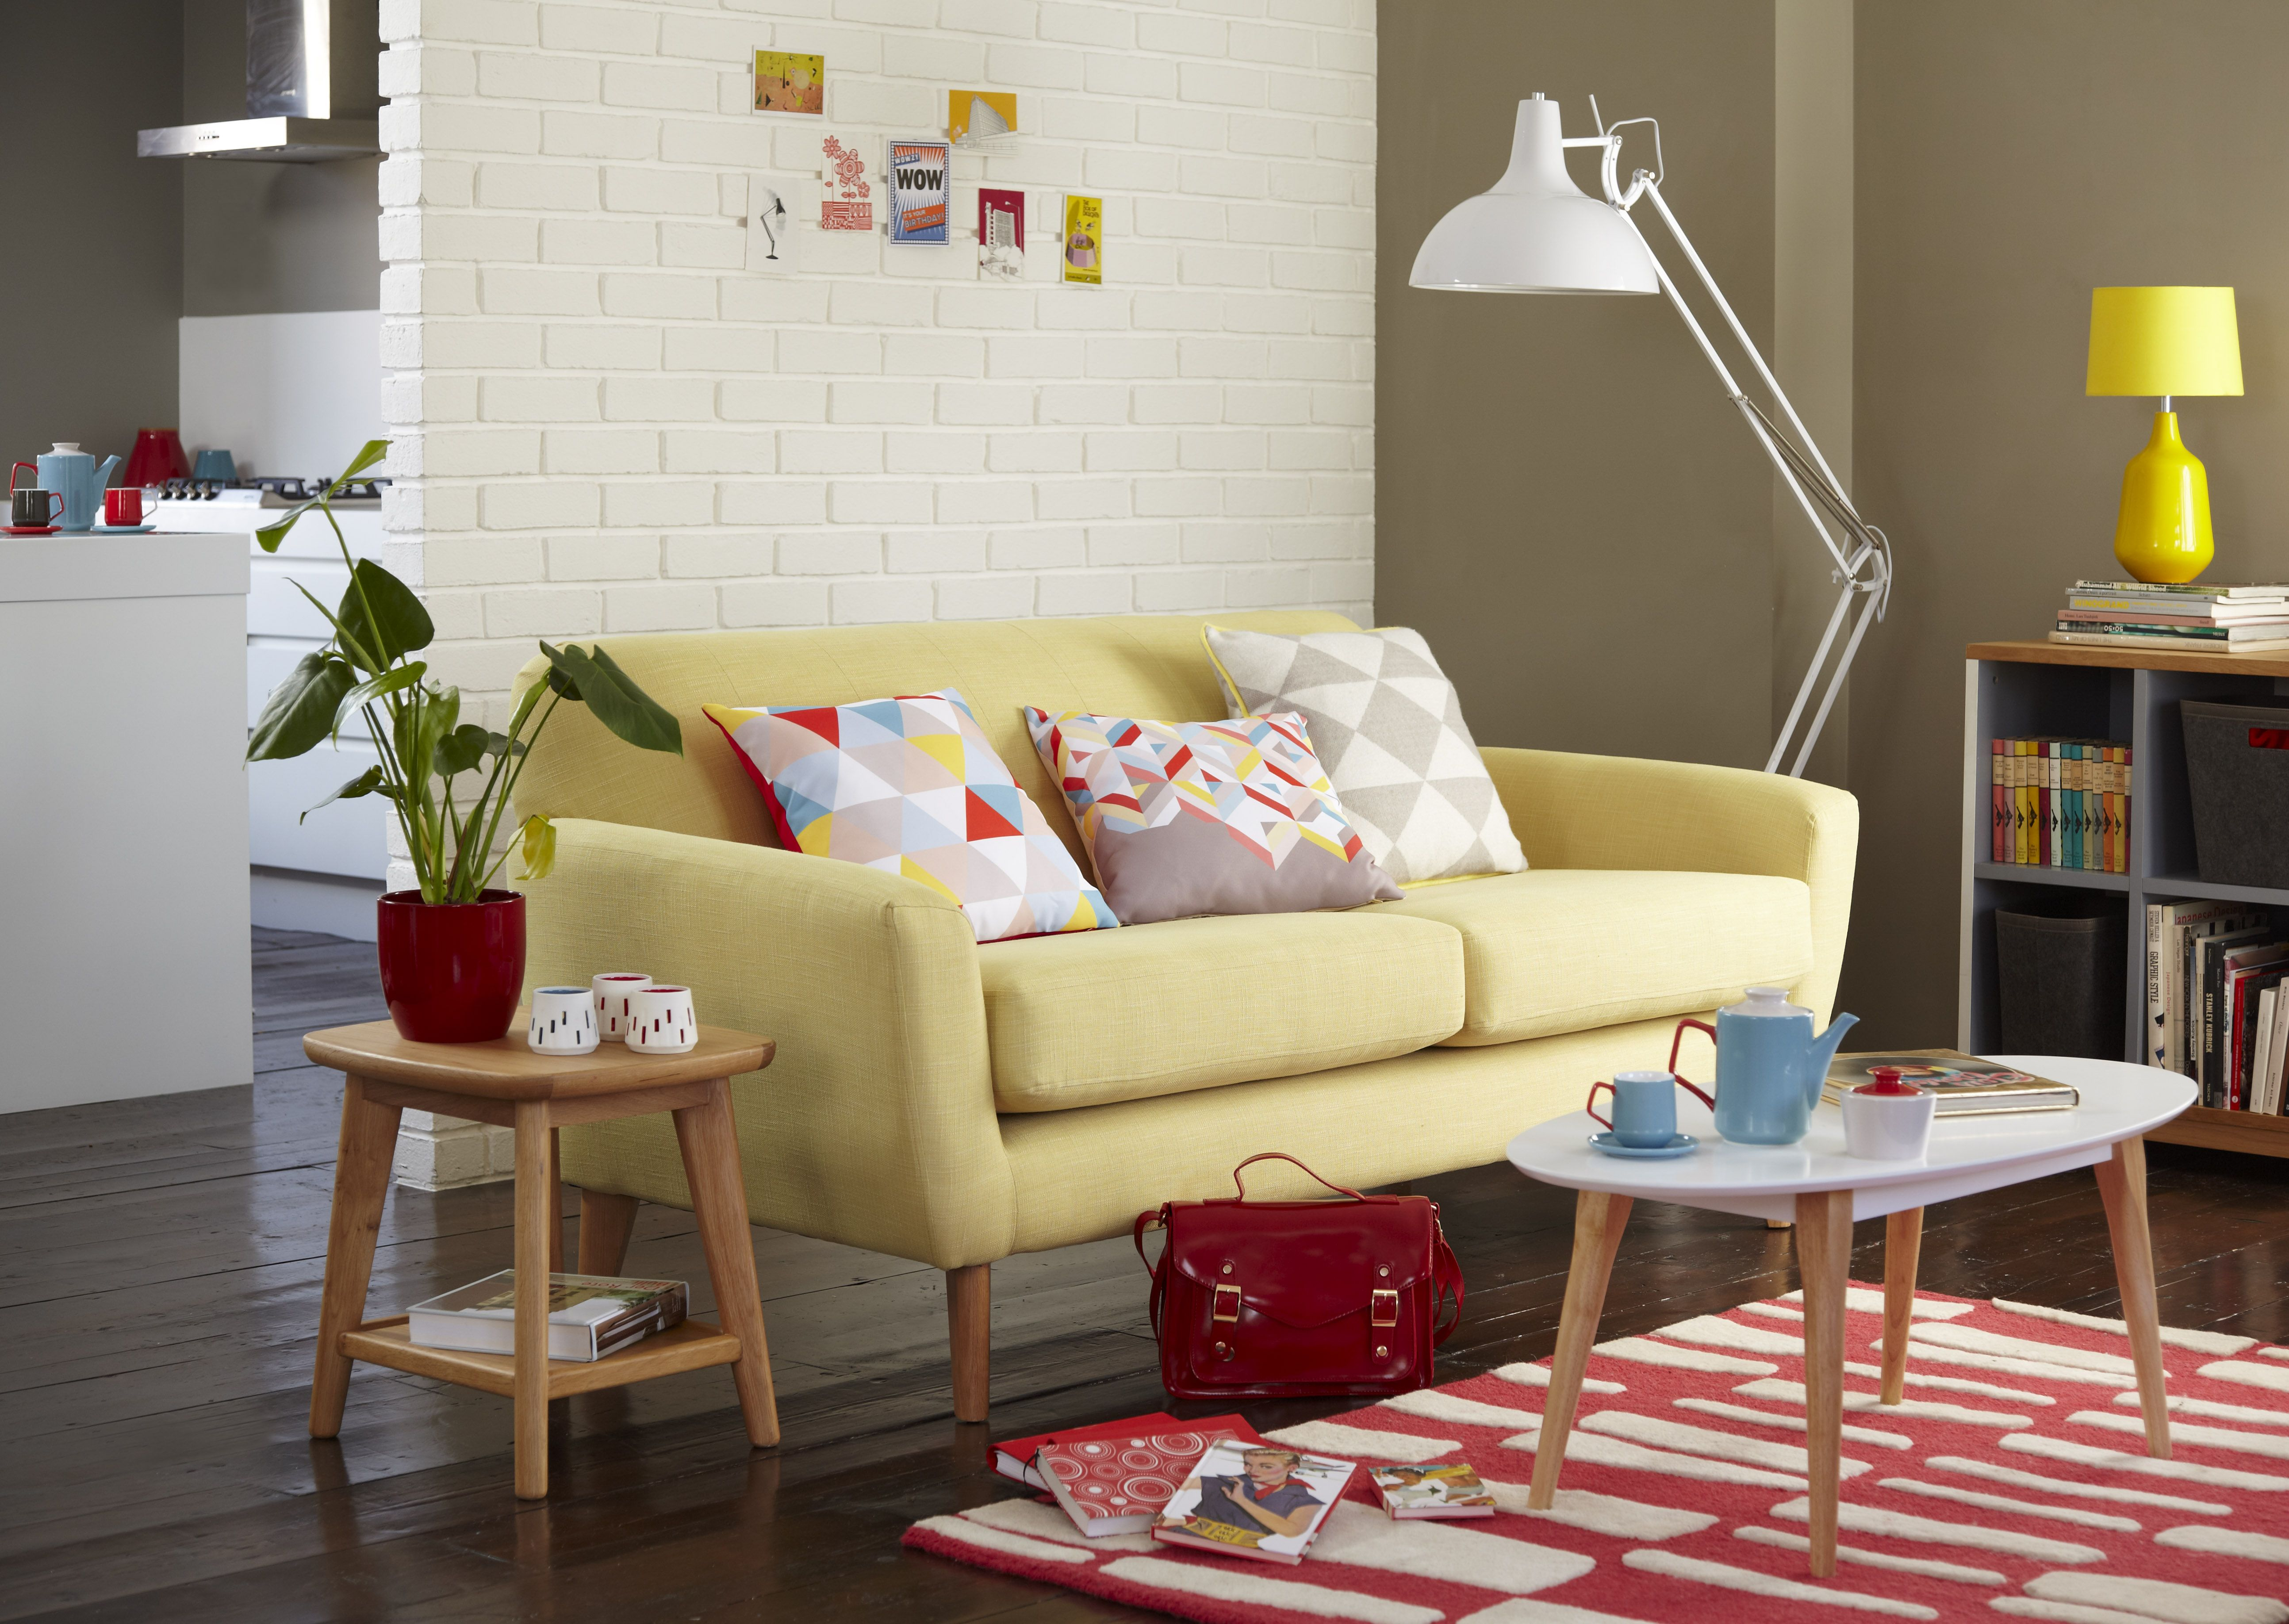 We love the midcentury trend. This yellow sofa is perfect if you want to achieve a modern retro look in your living room this season.